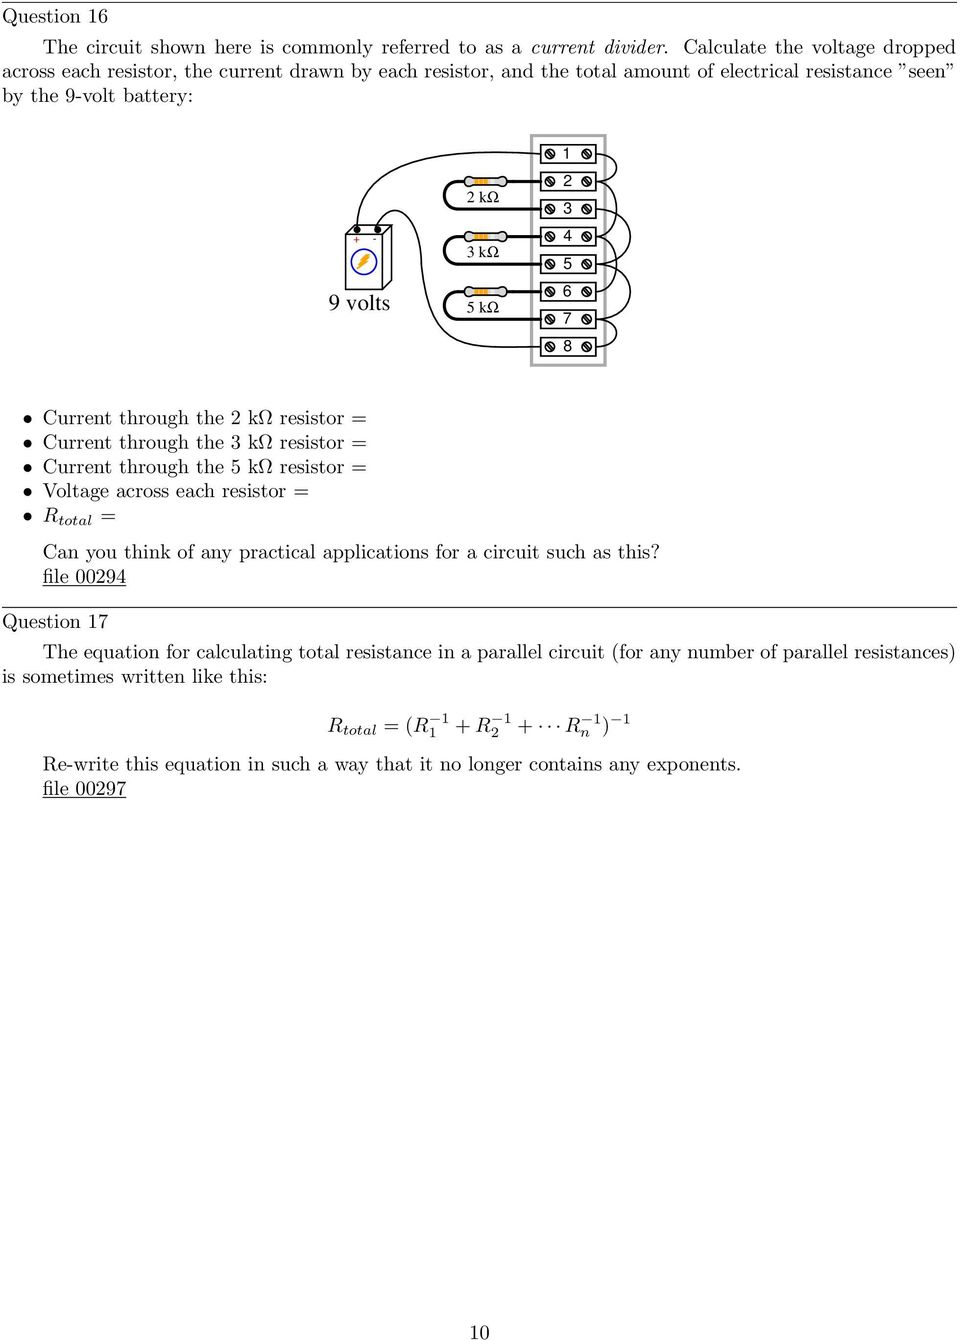 Year 4 Circuit Components Word Mat Science Electricity Ks2 Parallel Dc Circuits Pdf 6 7 8 Current Through The 2 K Resistor 3